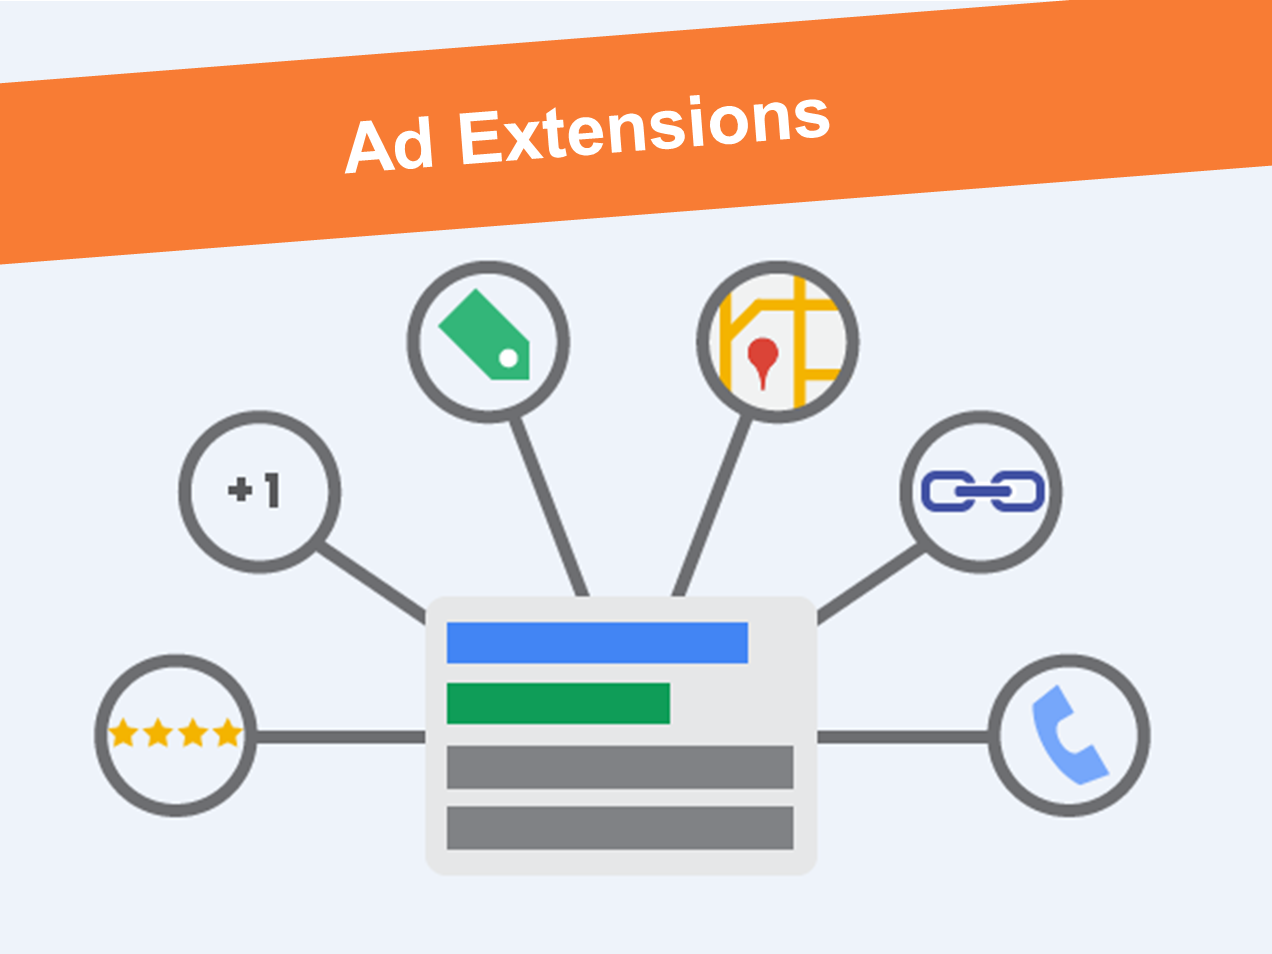 AD EXTENSIONS